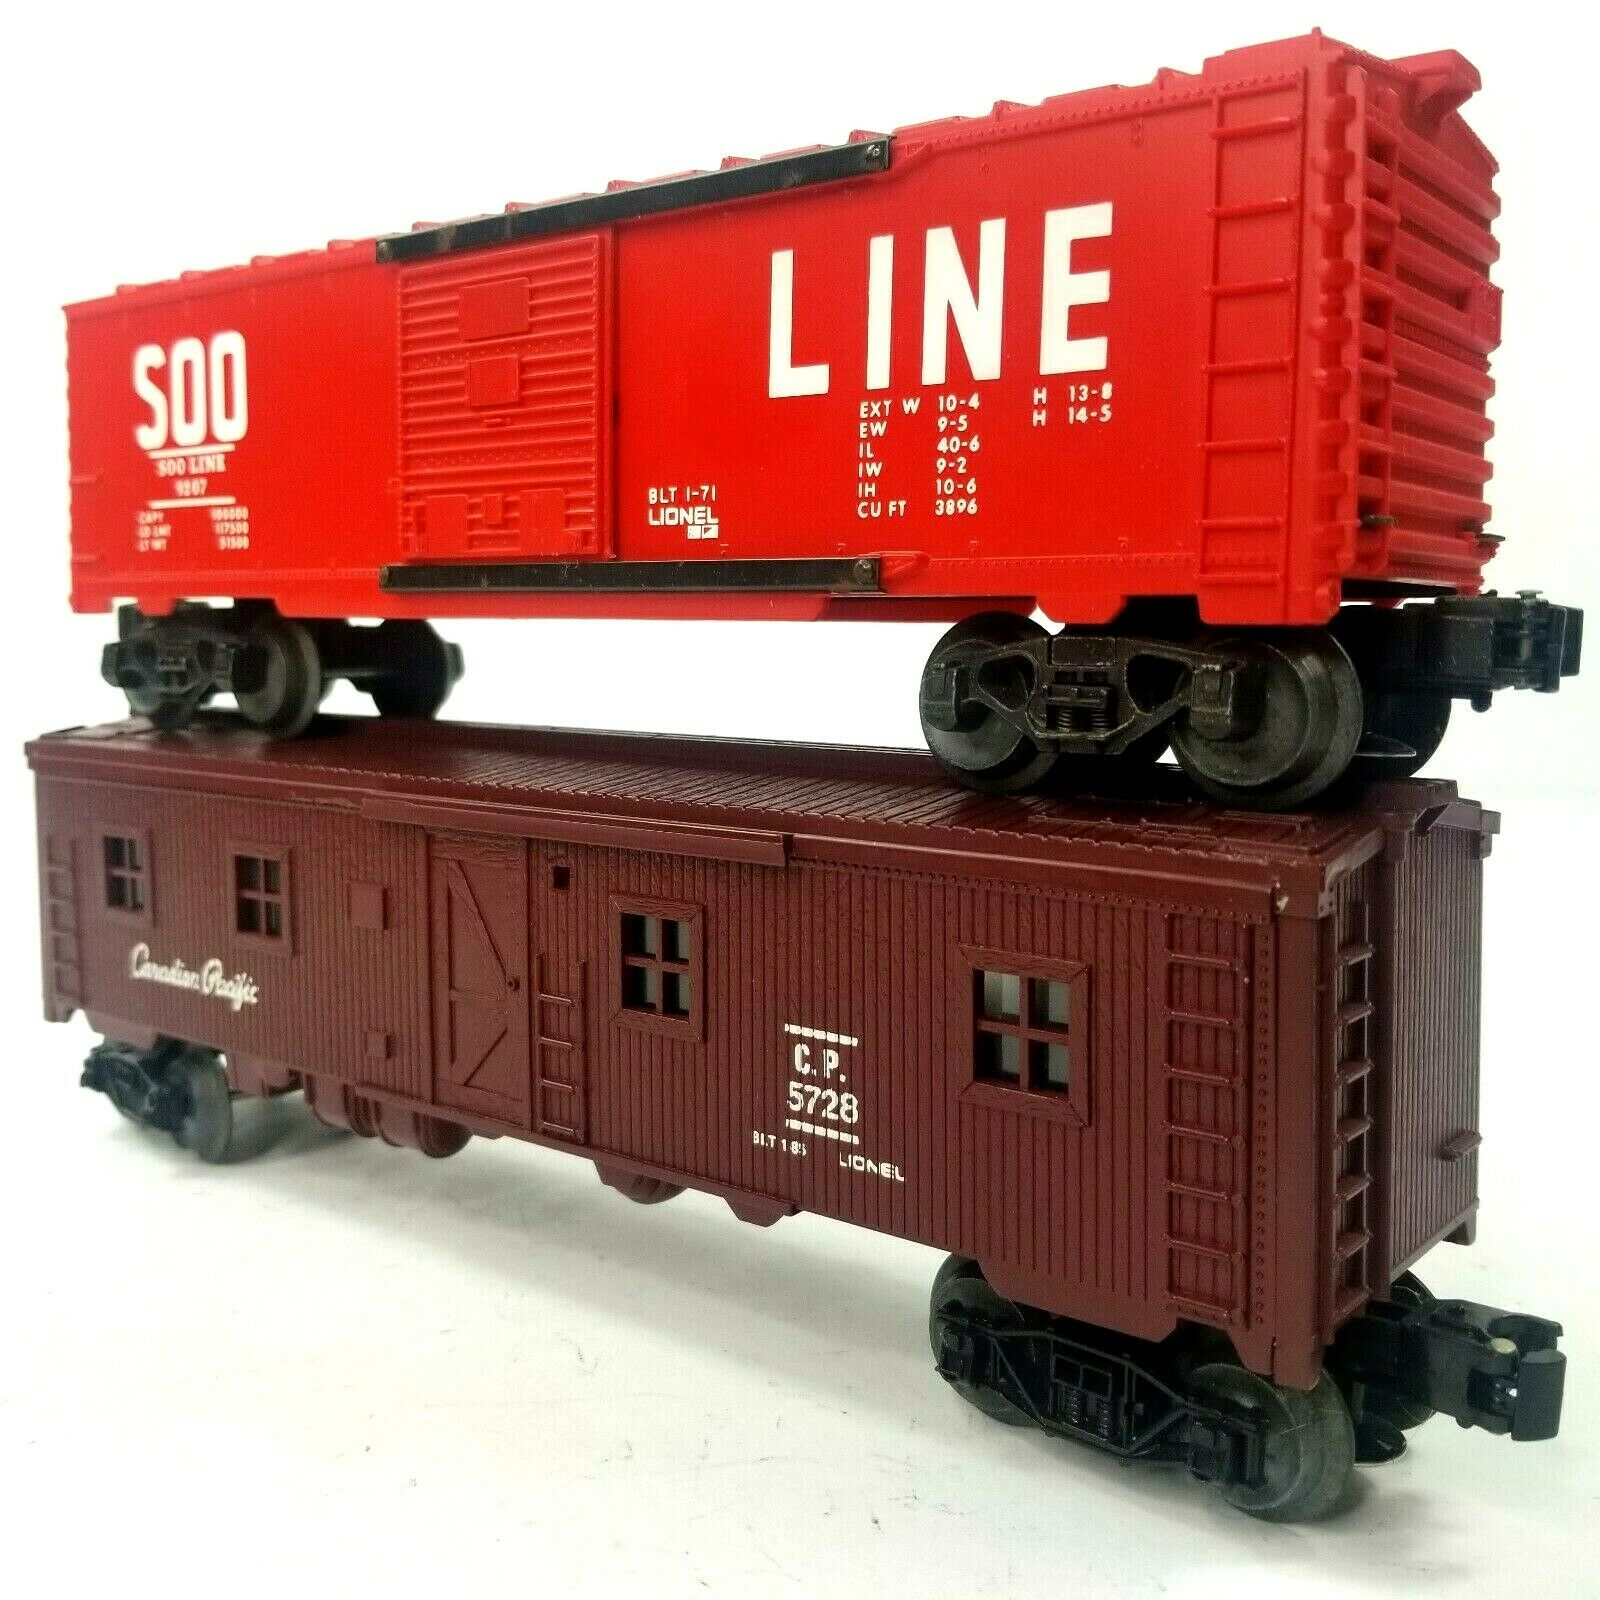 Lot of 2 Lionel Boxcars Soo Line 9207 & Canadian Pacific 5728 Trains 0 Scale New